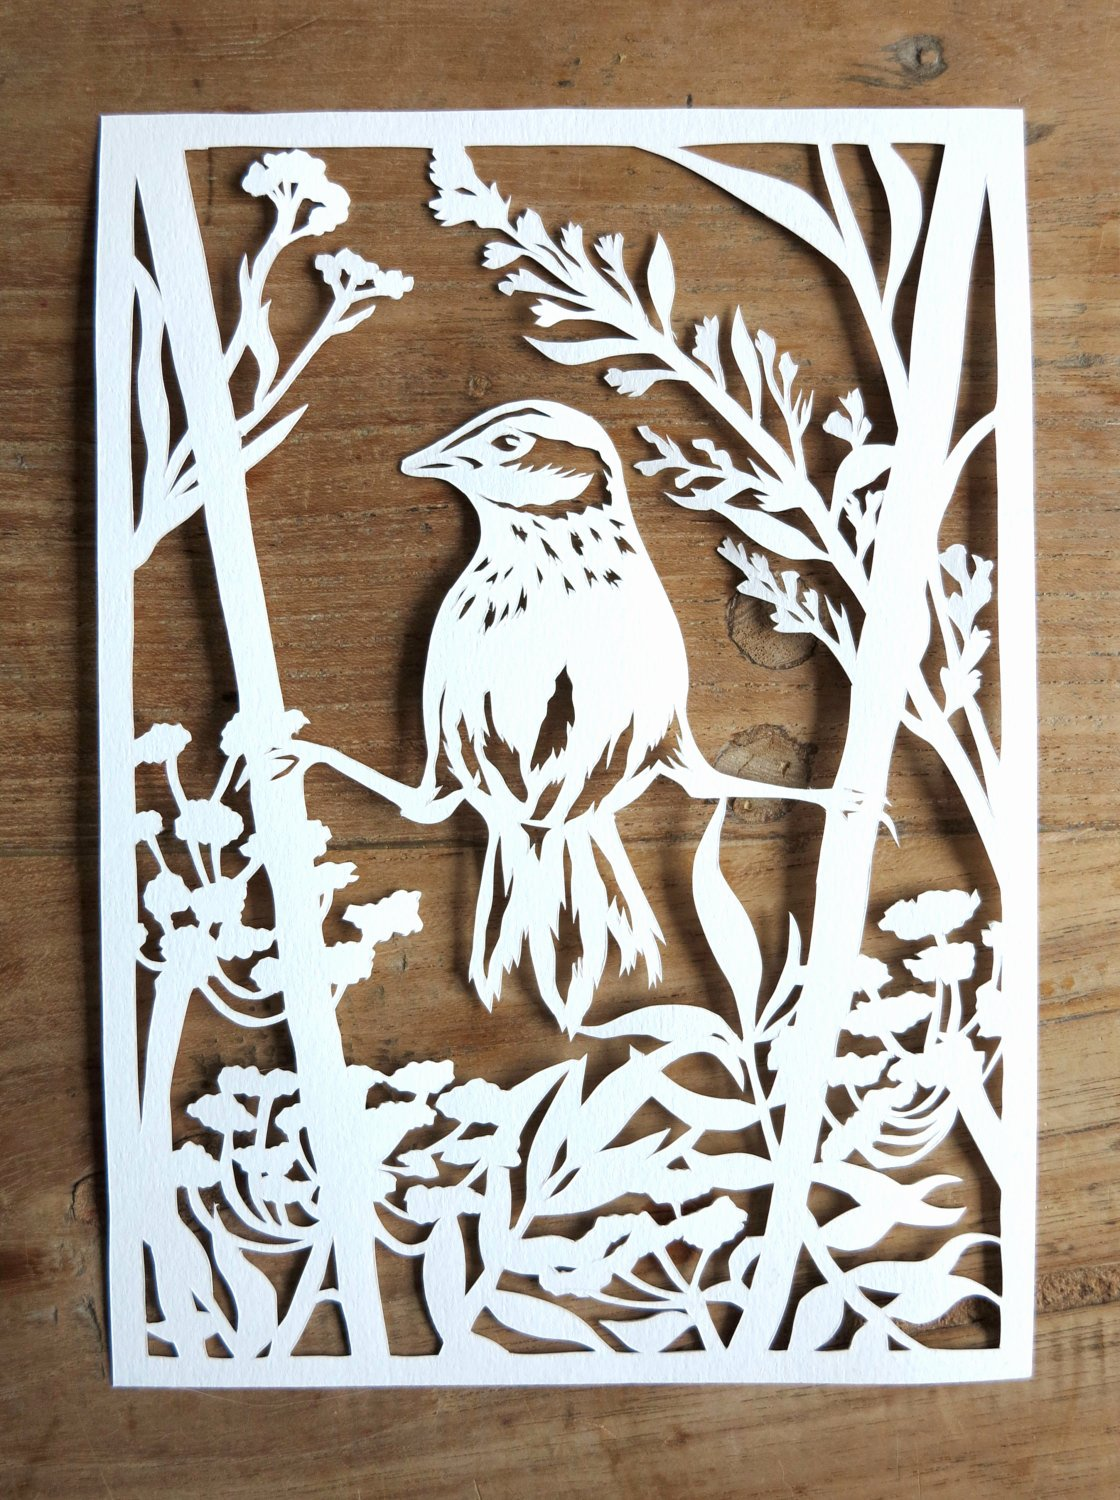 Paper Cutting Designs Template New Cut Paper Art Paper Cut Art Hand Cut Paper Cutting